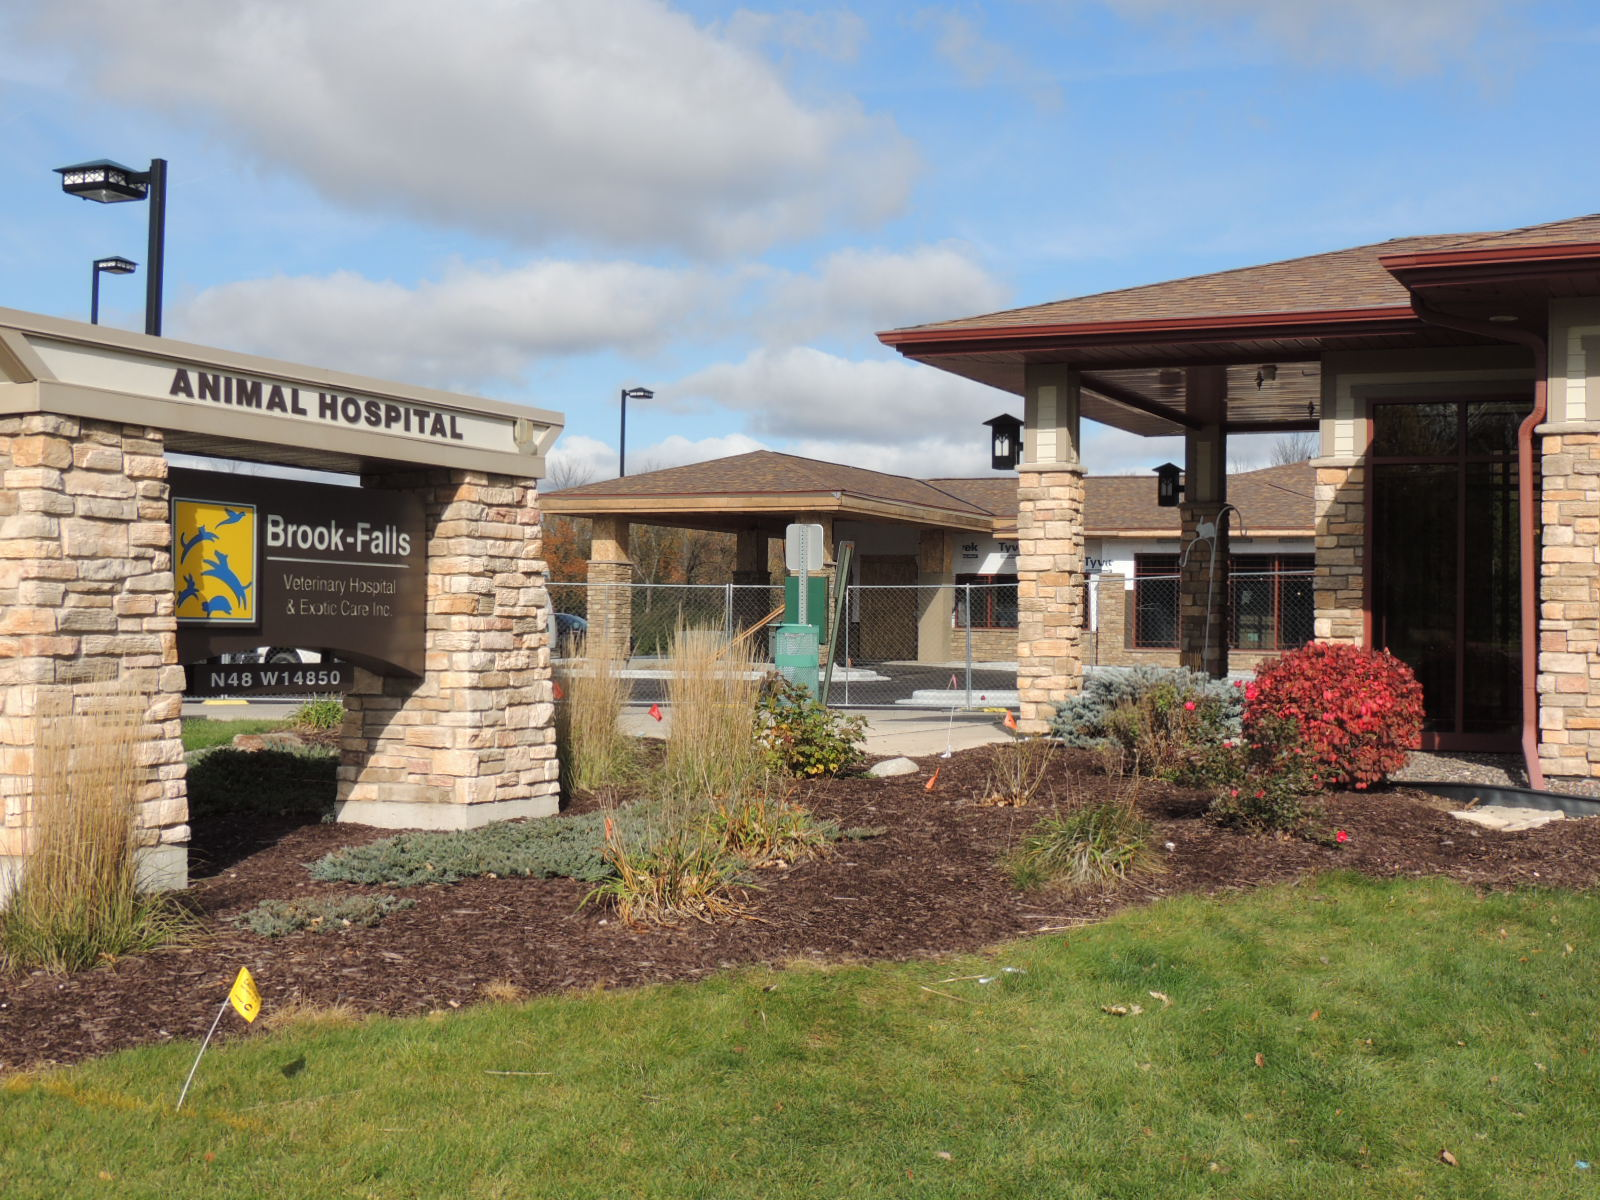 Brook-Falls Veterinary Hospital Addition under Construction